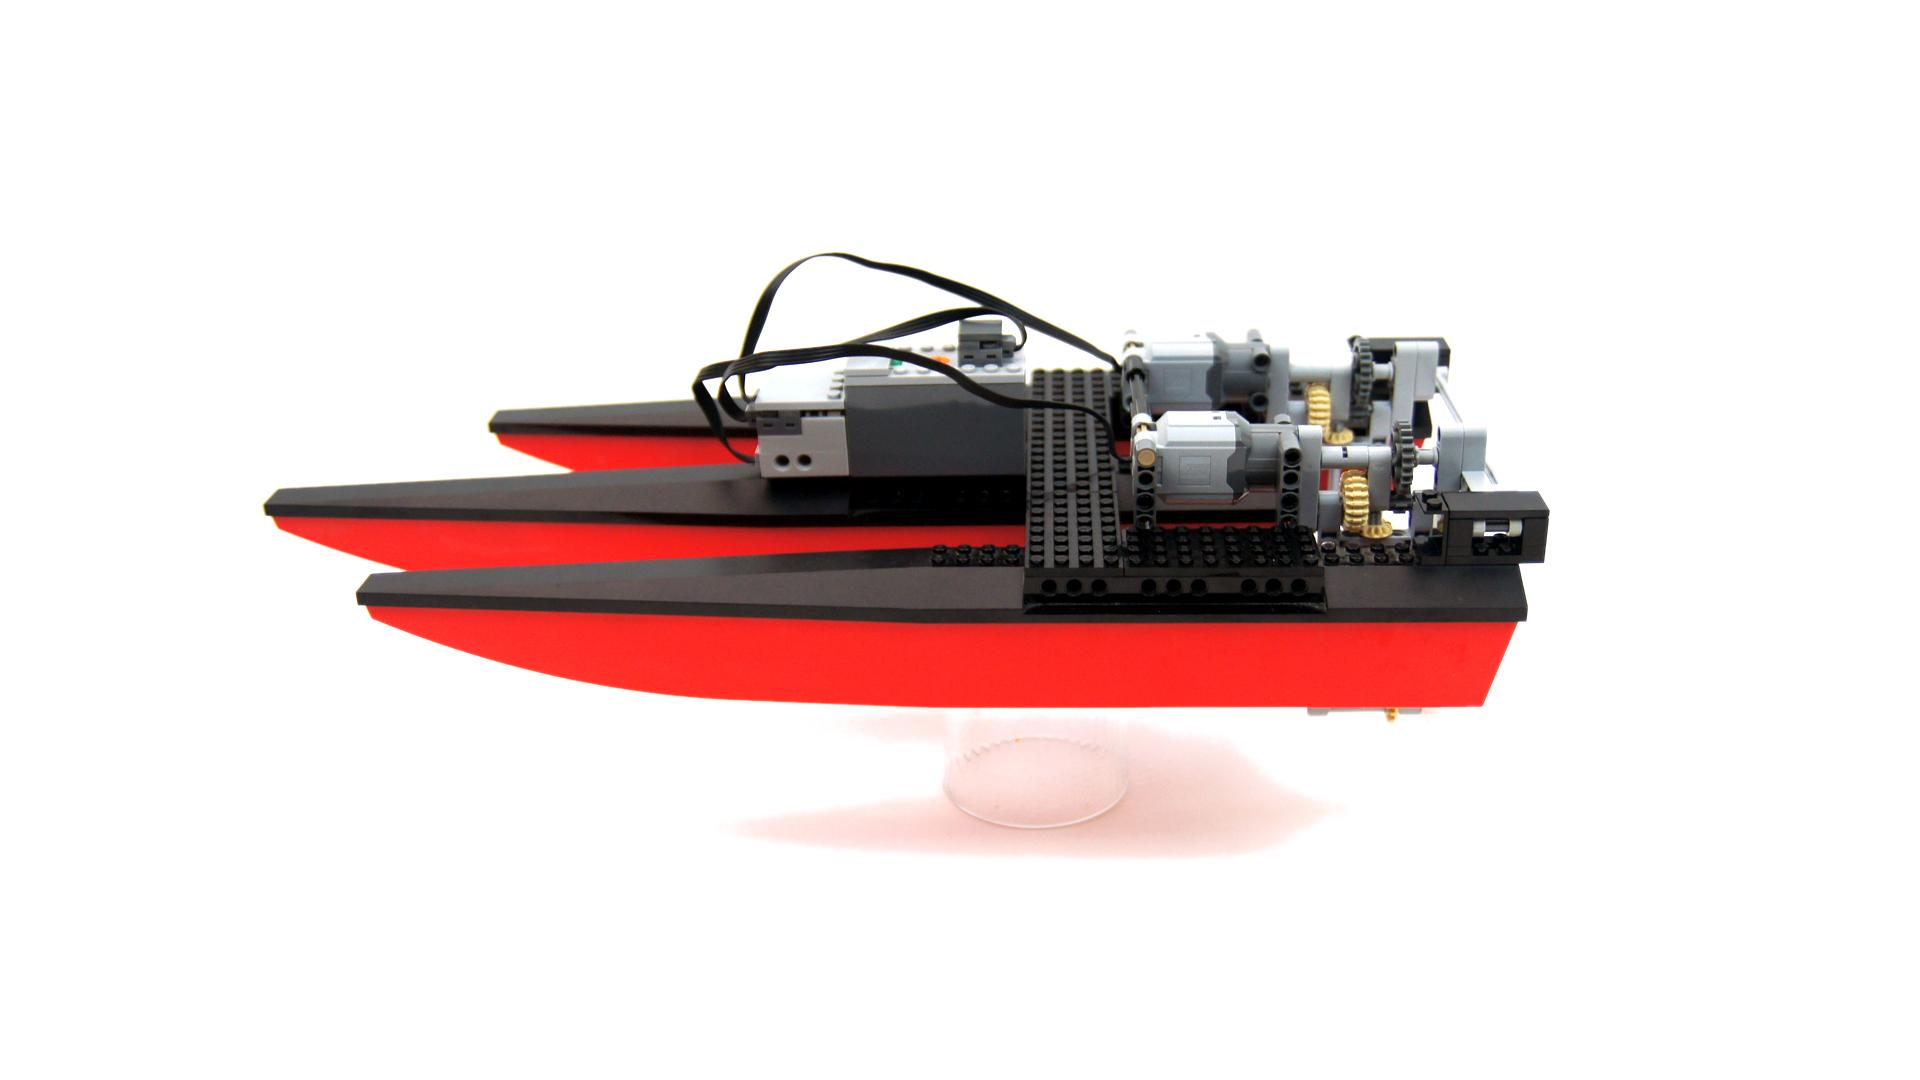 LEGO Expert Builds Incredible RC Boat with 3D Printed Propellers